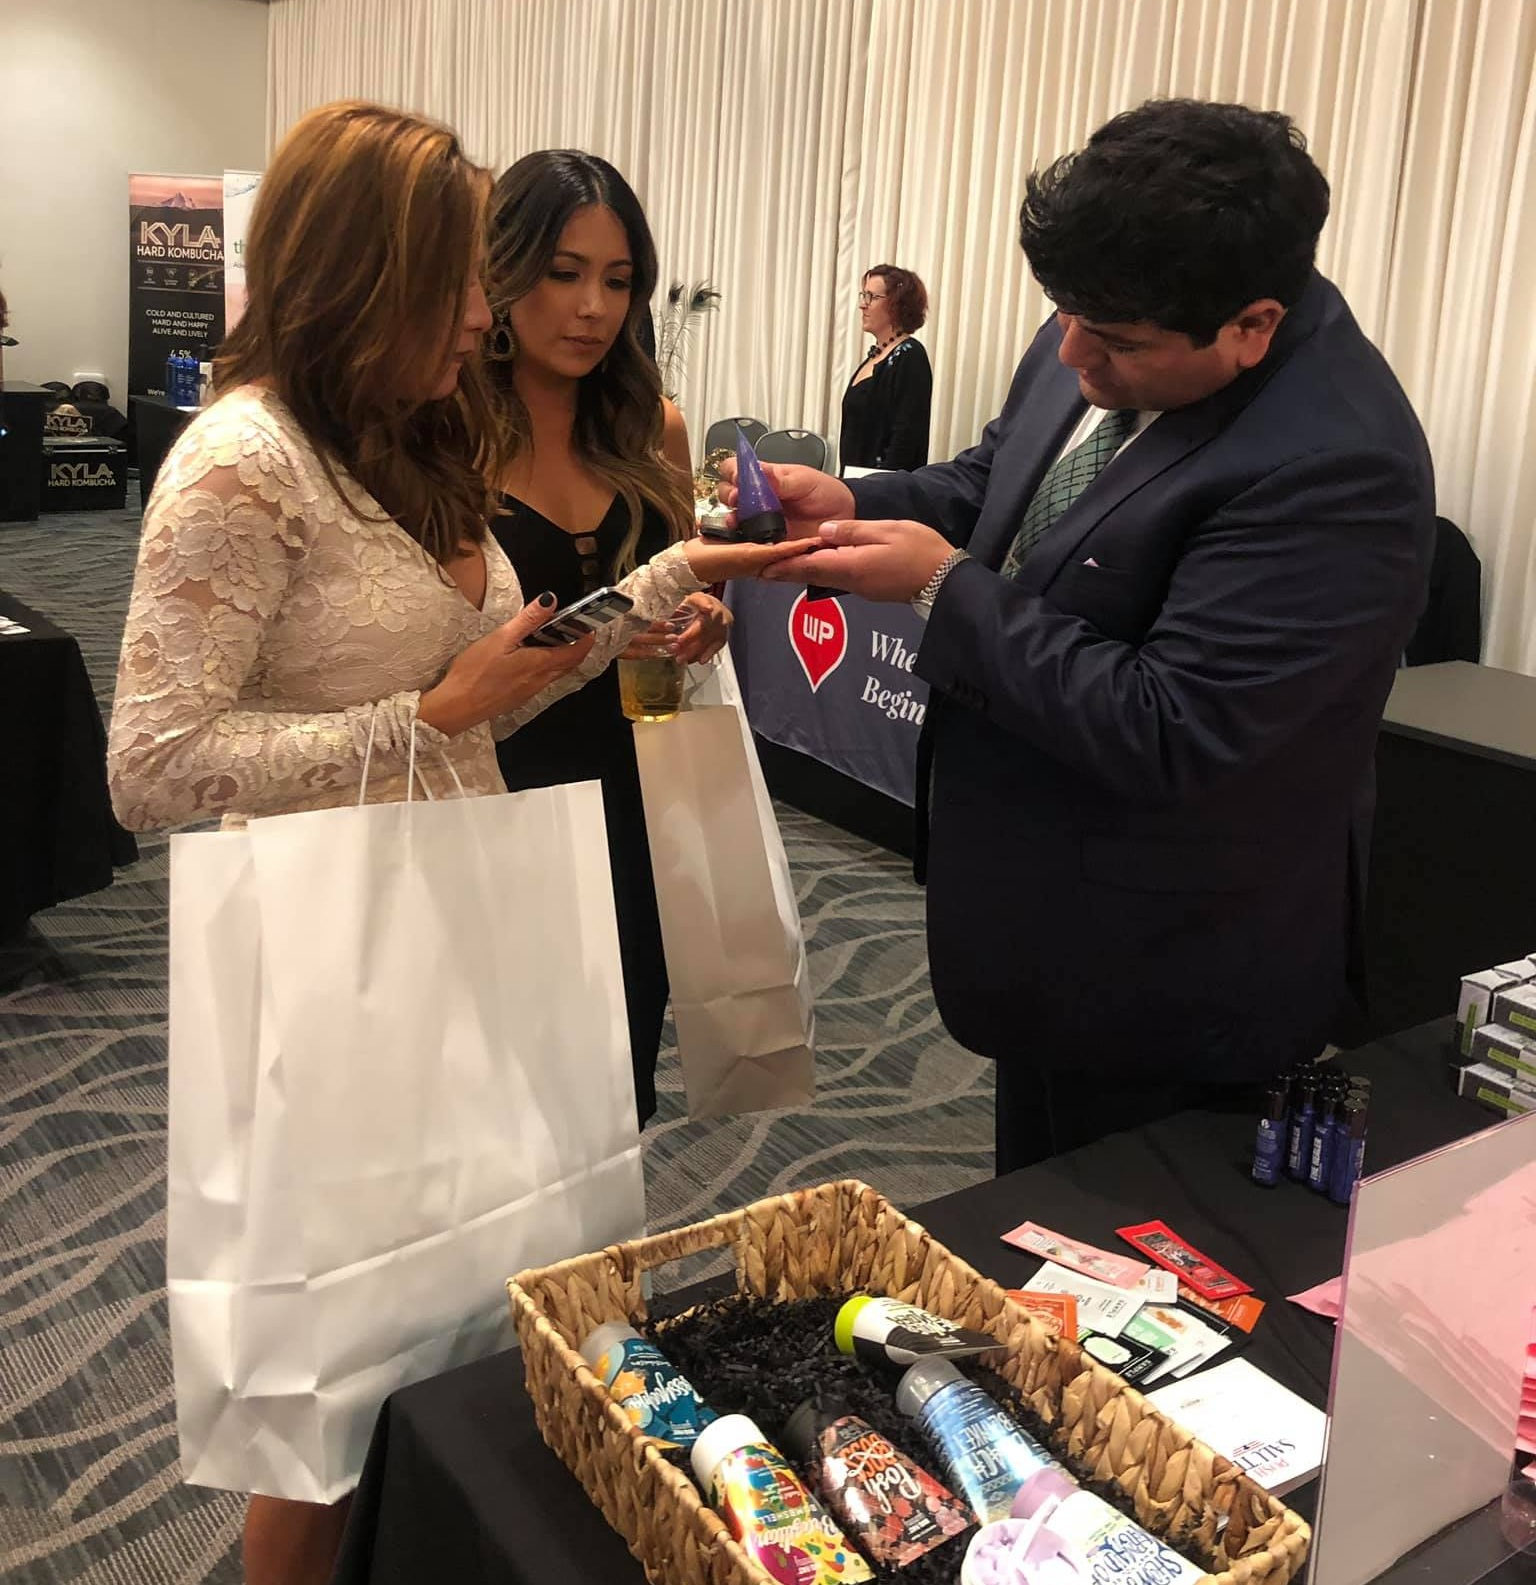 Perfectly Posh pampered at the pre-Oscar party 2019 with Big Fat Yummy Hand Crème samples